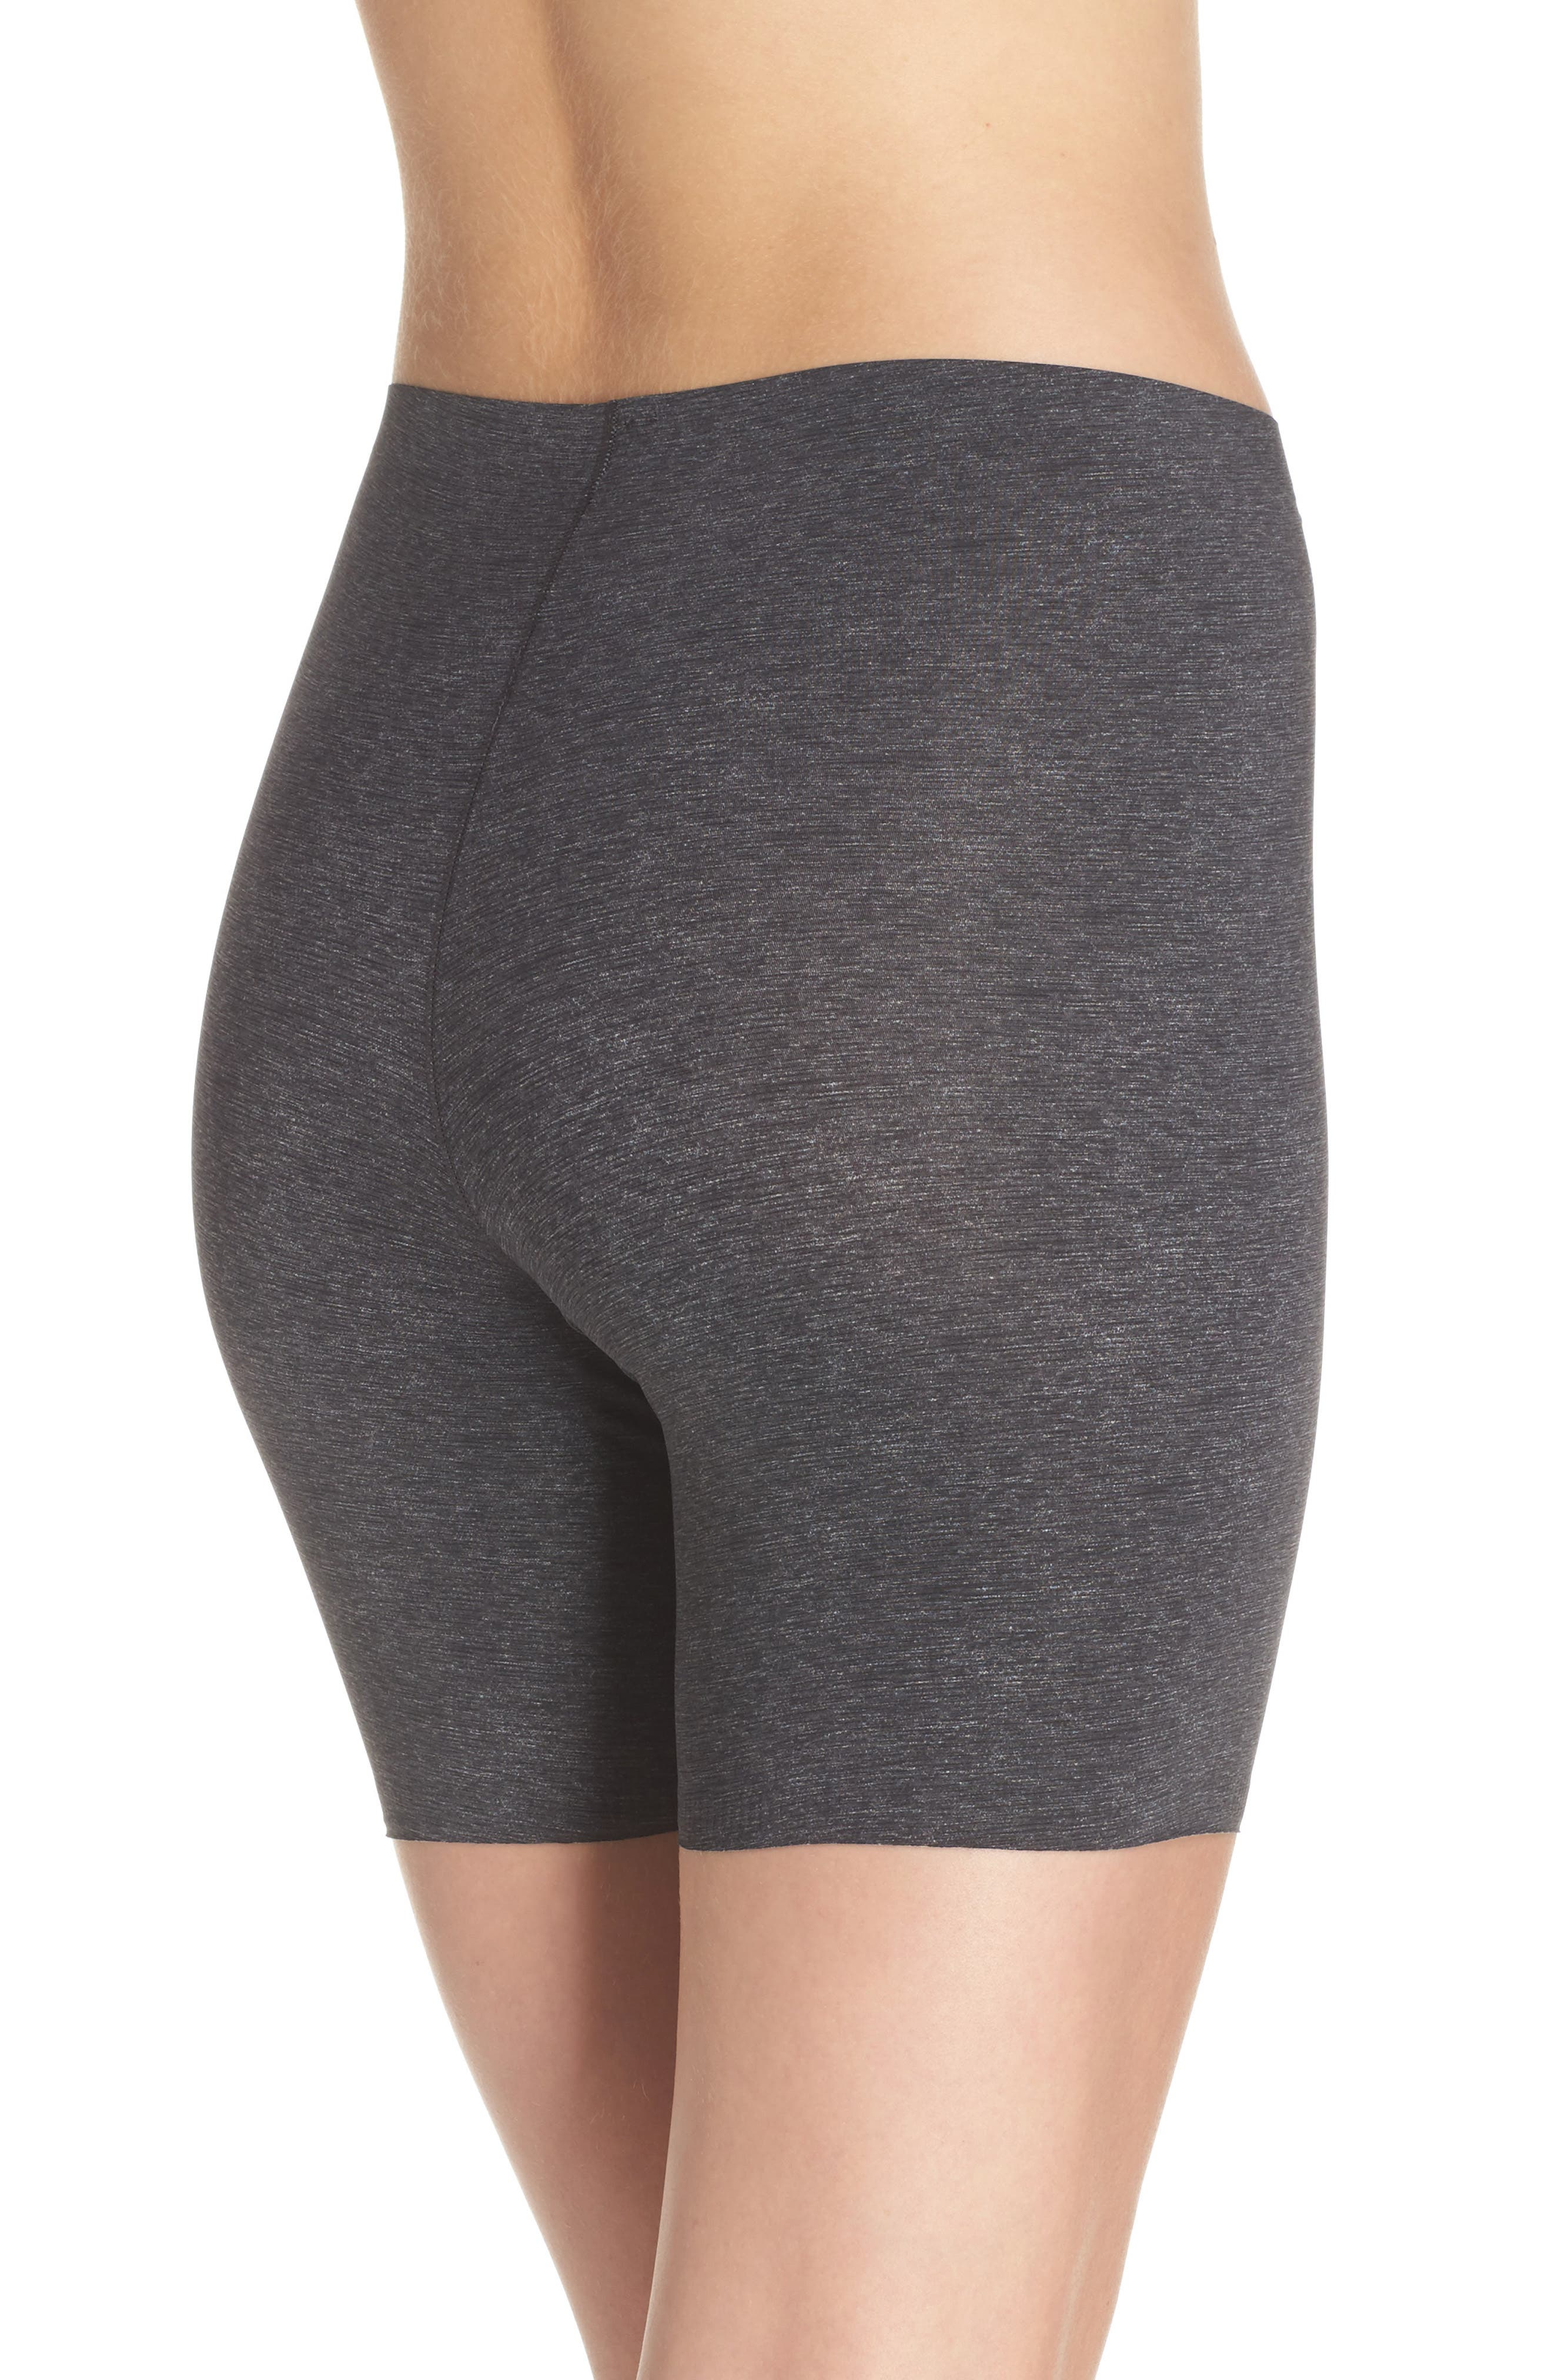 Thinstincts Girl Shorts,                             Alternate thumbnail 2, color,                             Heather Charcoal